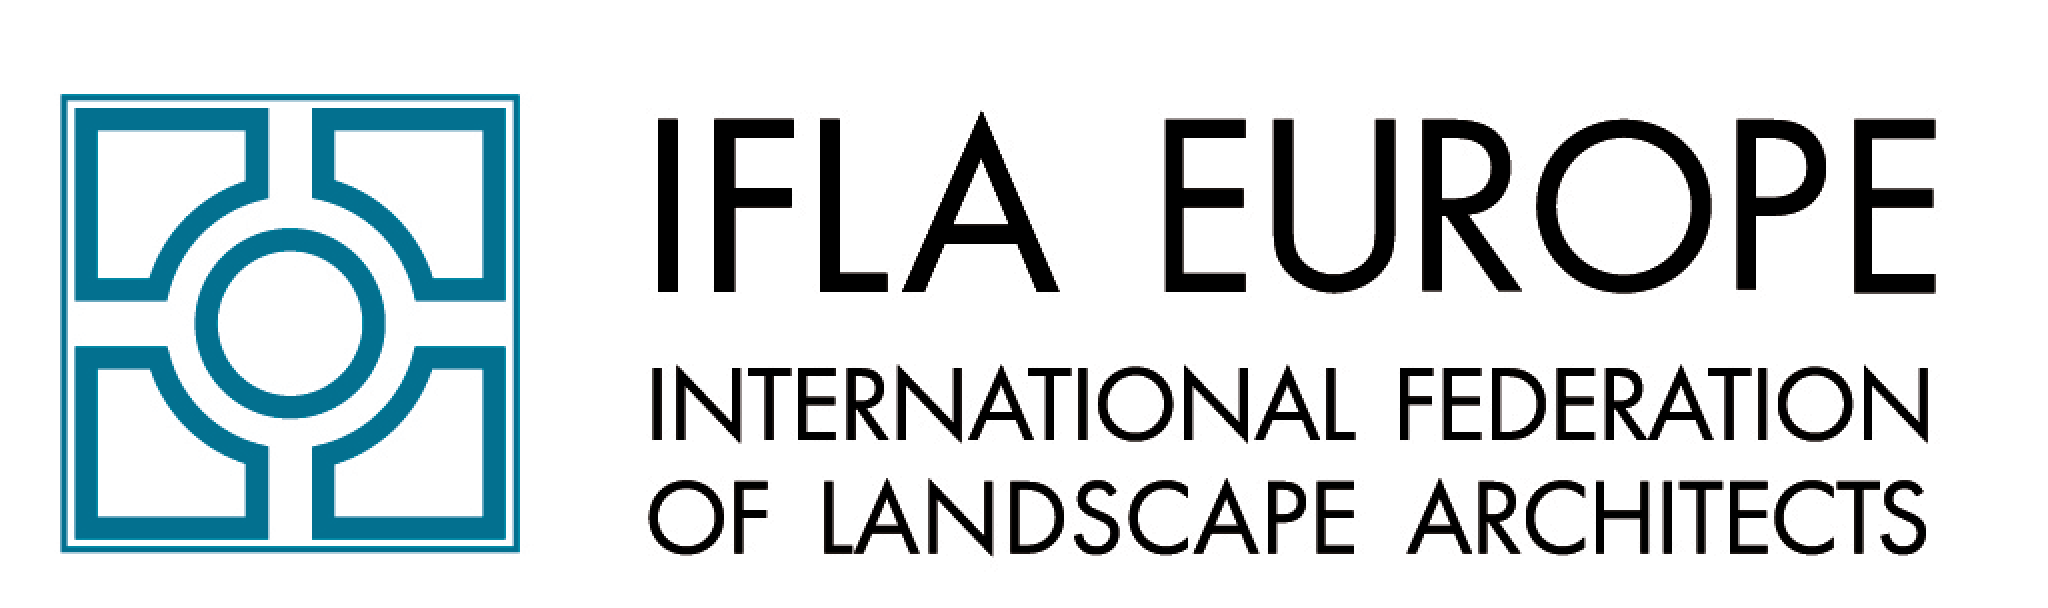 Becoming a Landscape Architect – Call for papers - deadline extended to 3 June 2020